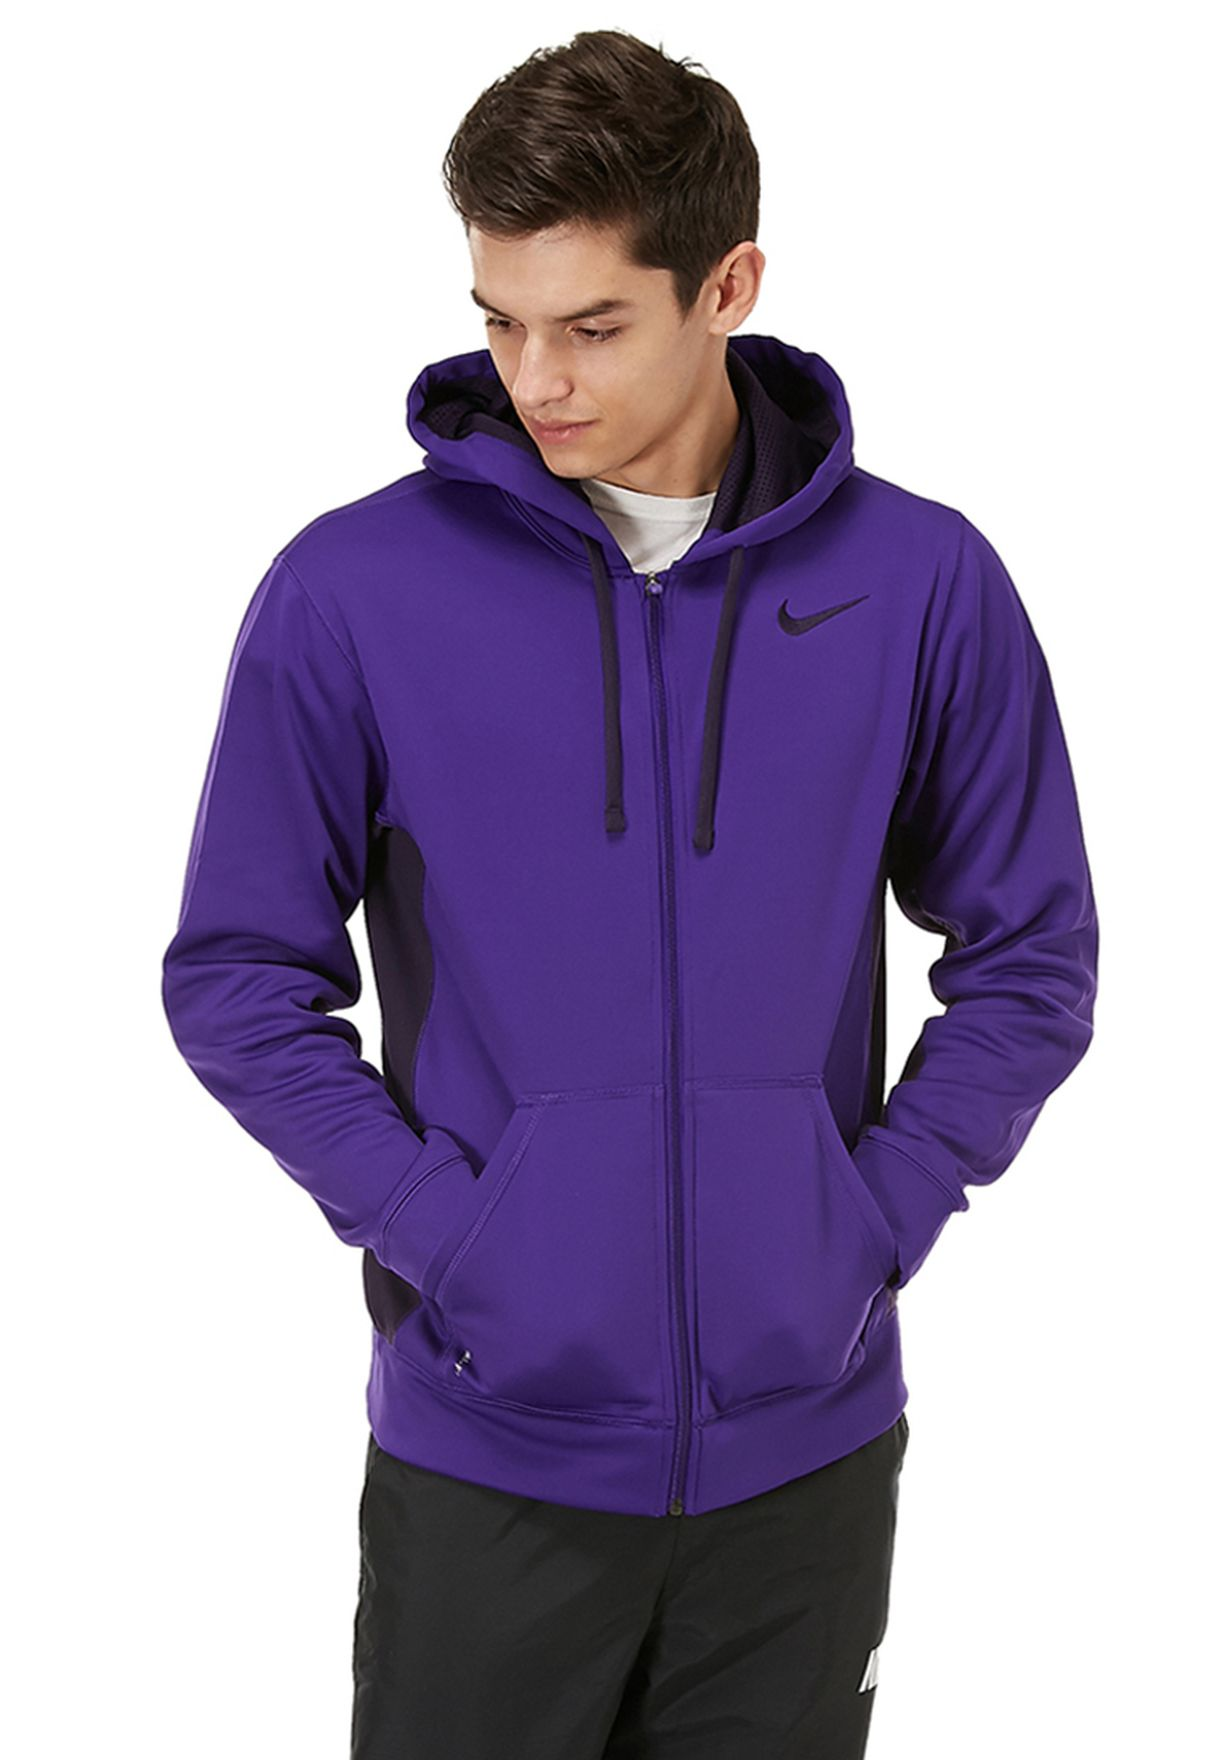 bc669c6a3418 Shop Nike purple Nike KO Full Zip Hoodie 2.0 NKAP465786-531 for Men ...